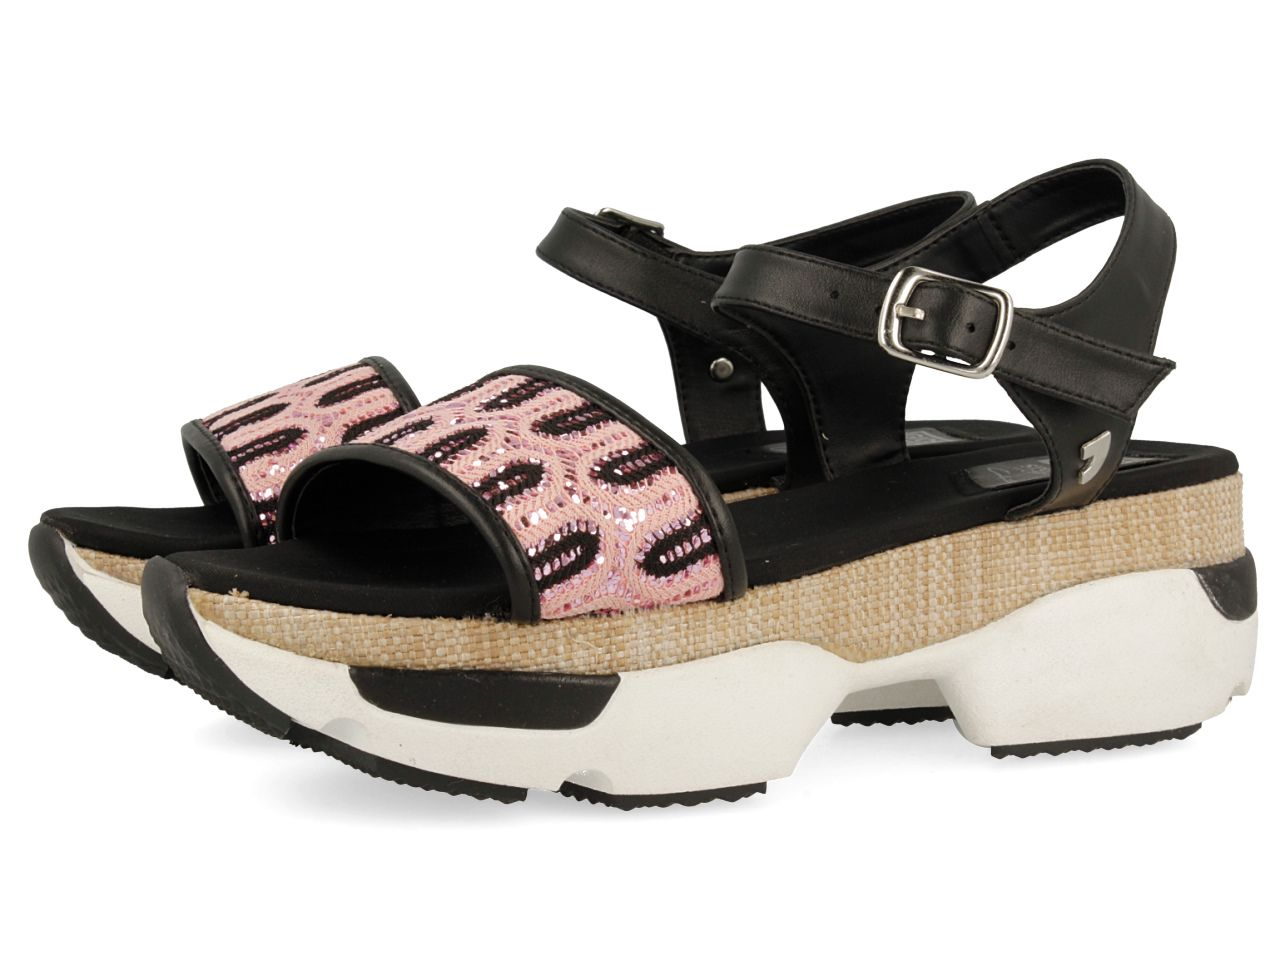 Gioseppo Gioseppo Pink Sandals, Pink